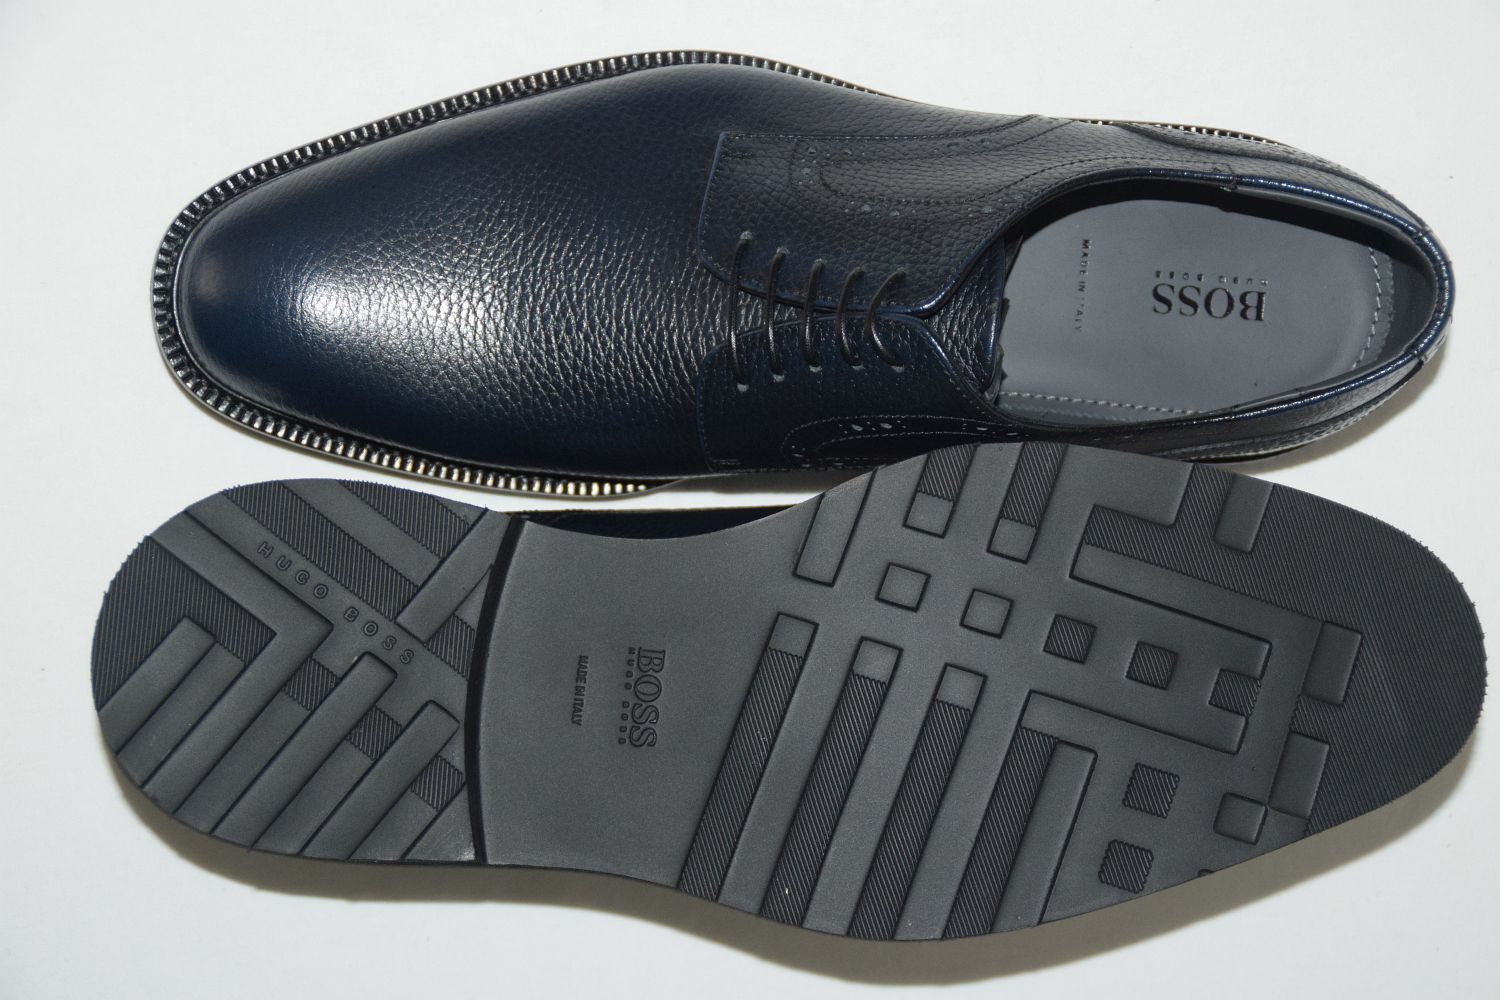 HUGO 45, BOSS BUSINESSSCHUHE, Gr. EU 45, HUGO   , Made in , Dark Blau 196dfa